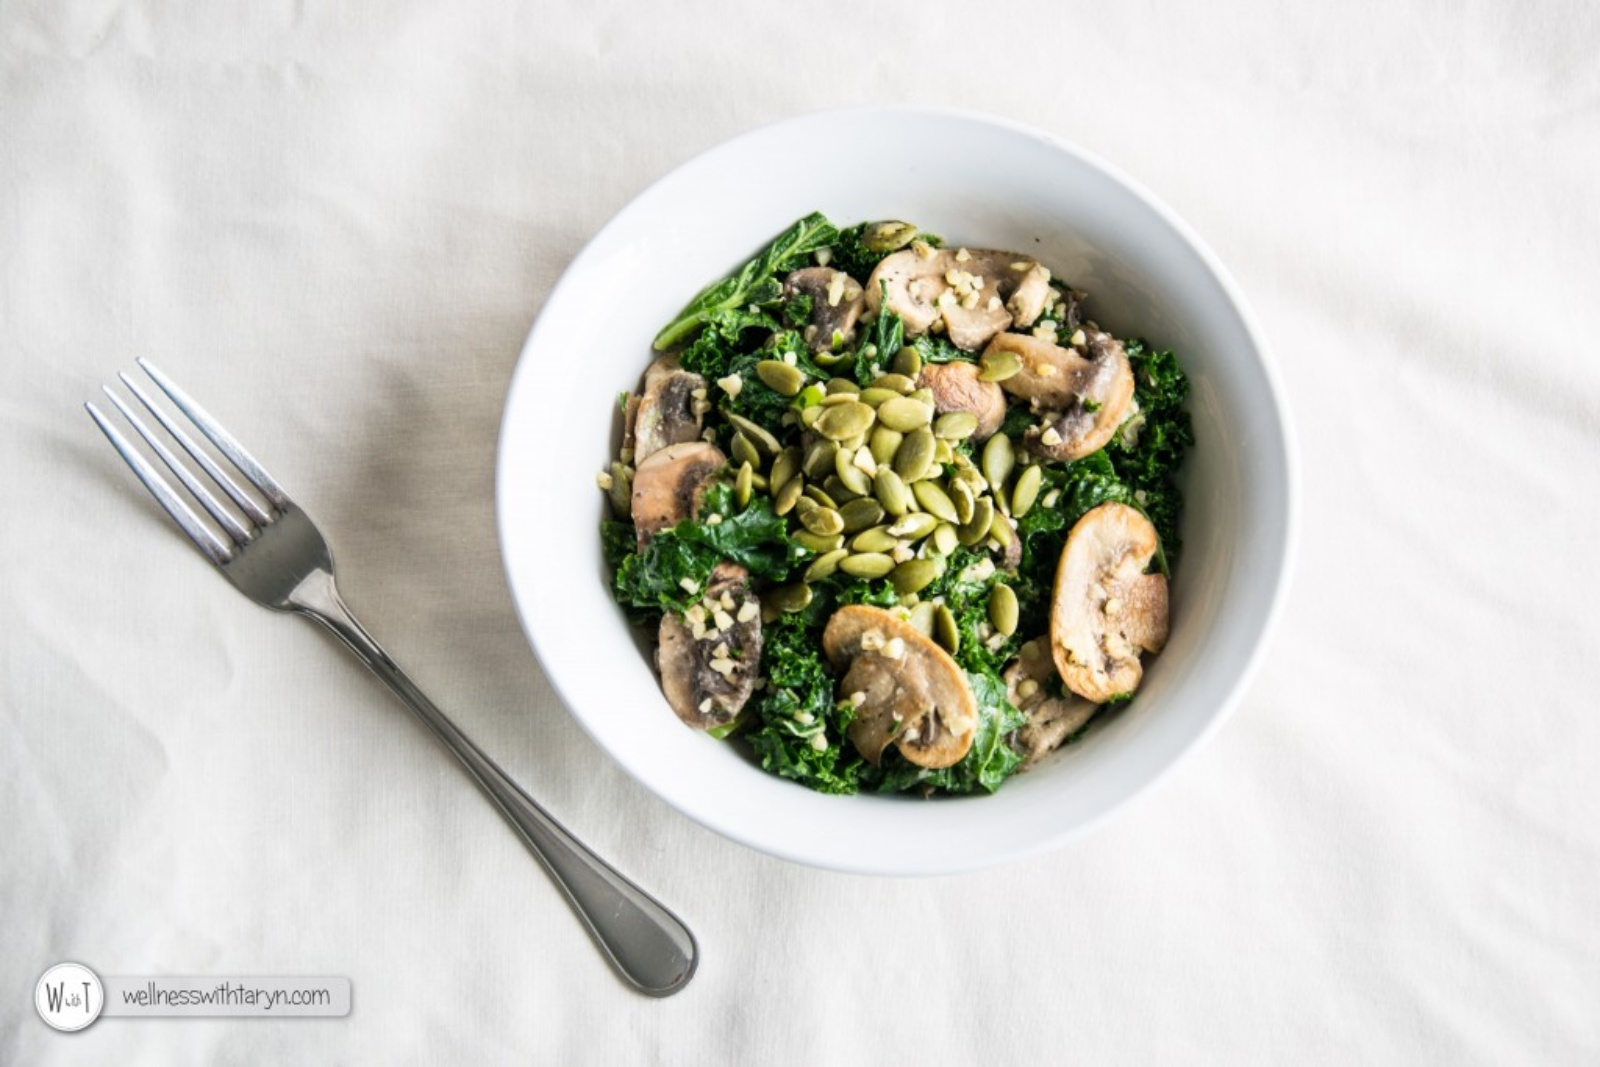 marinated kale and mushroom salad